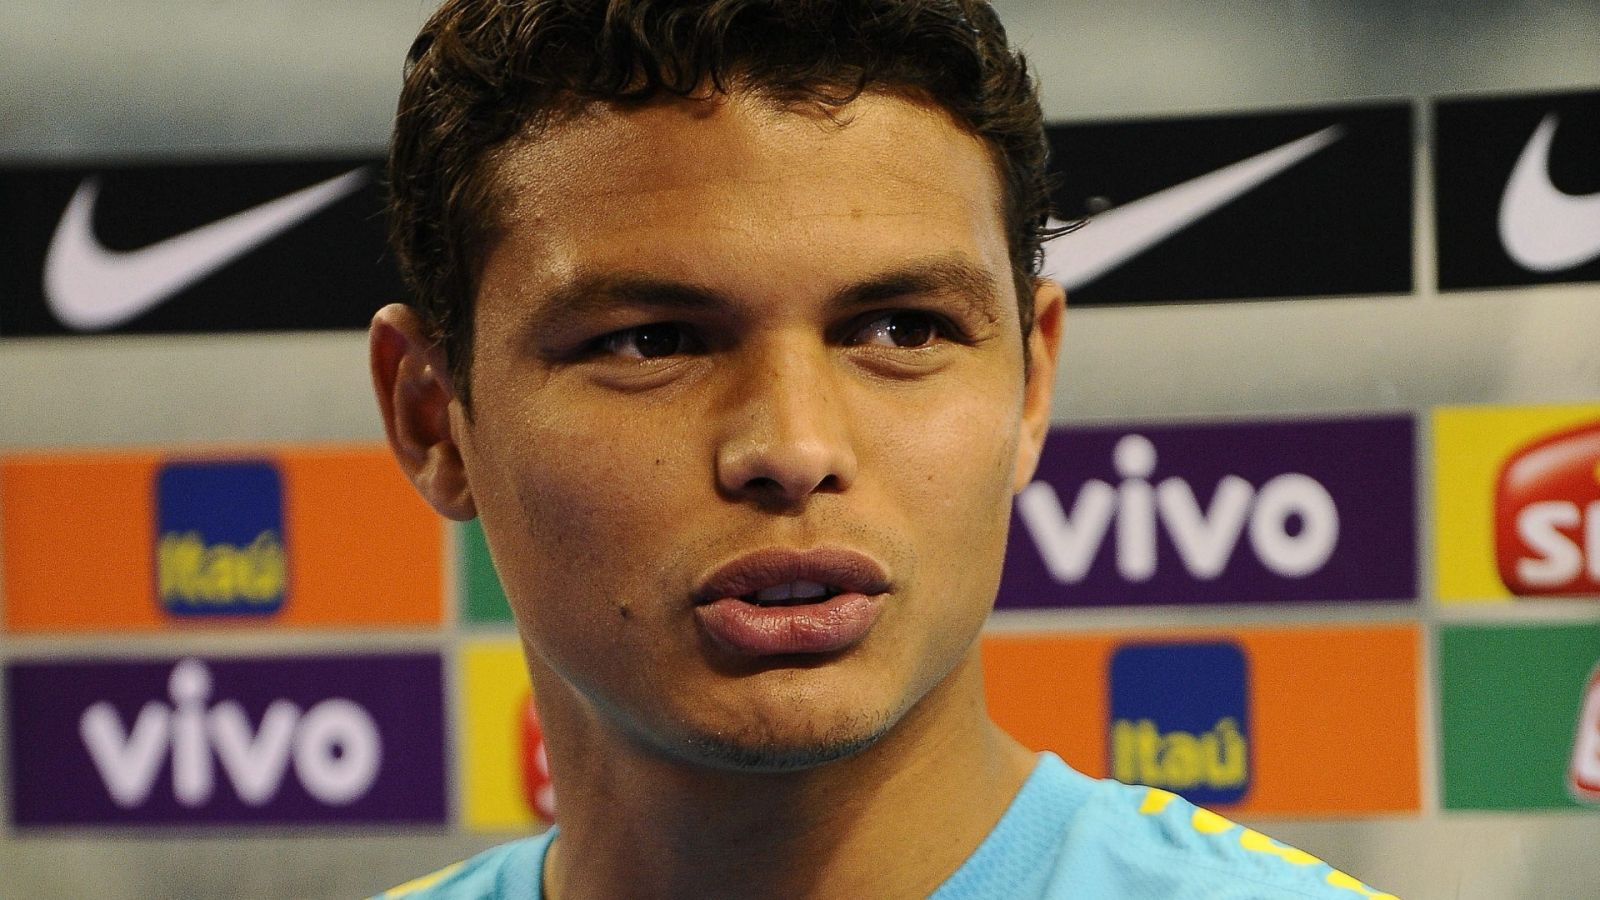 Thiago Silva Football Soccer Player Mobile Desktop Background Images